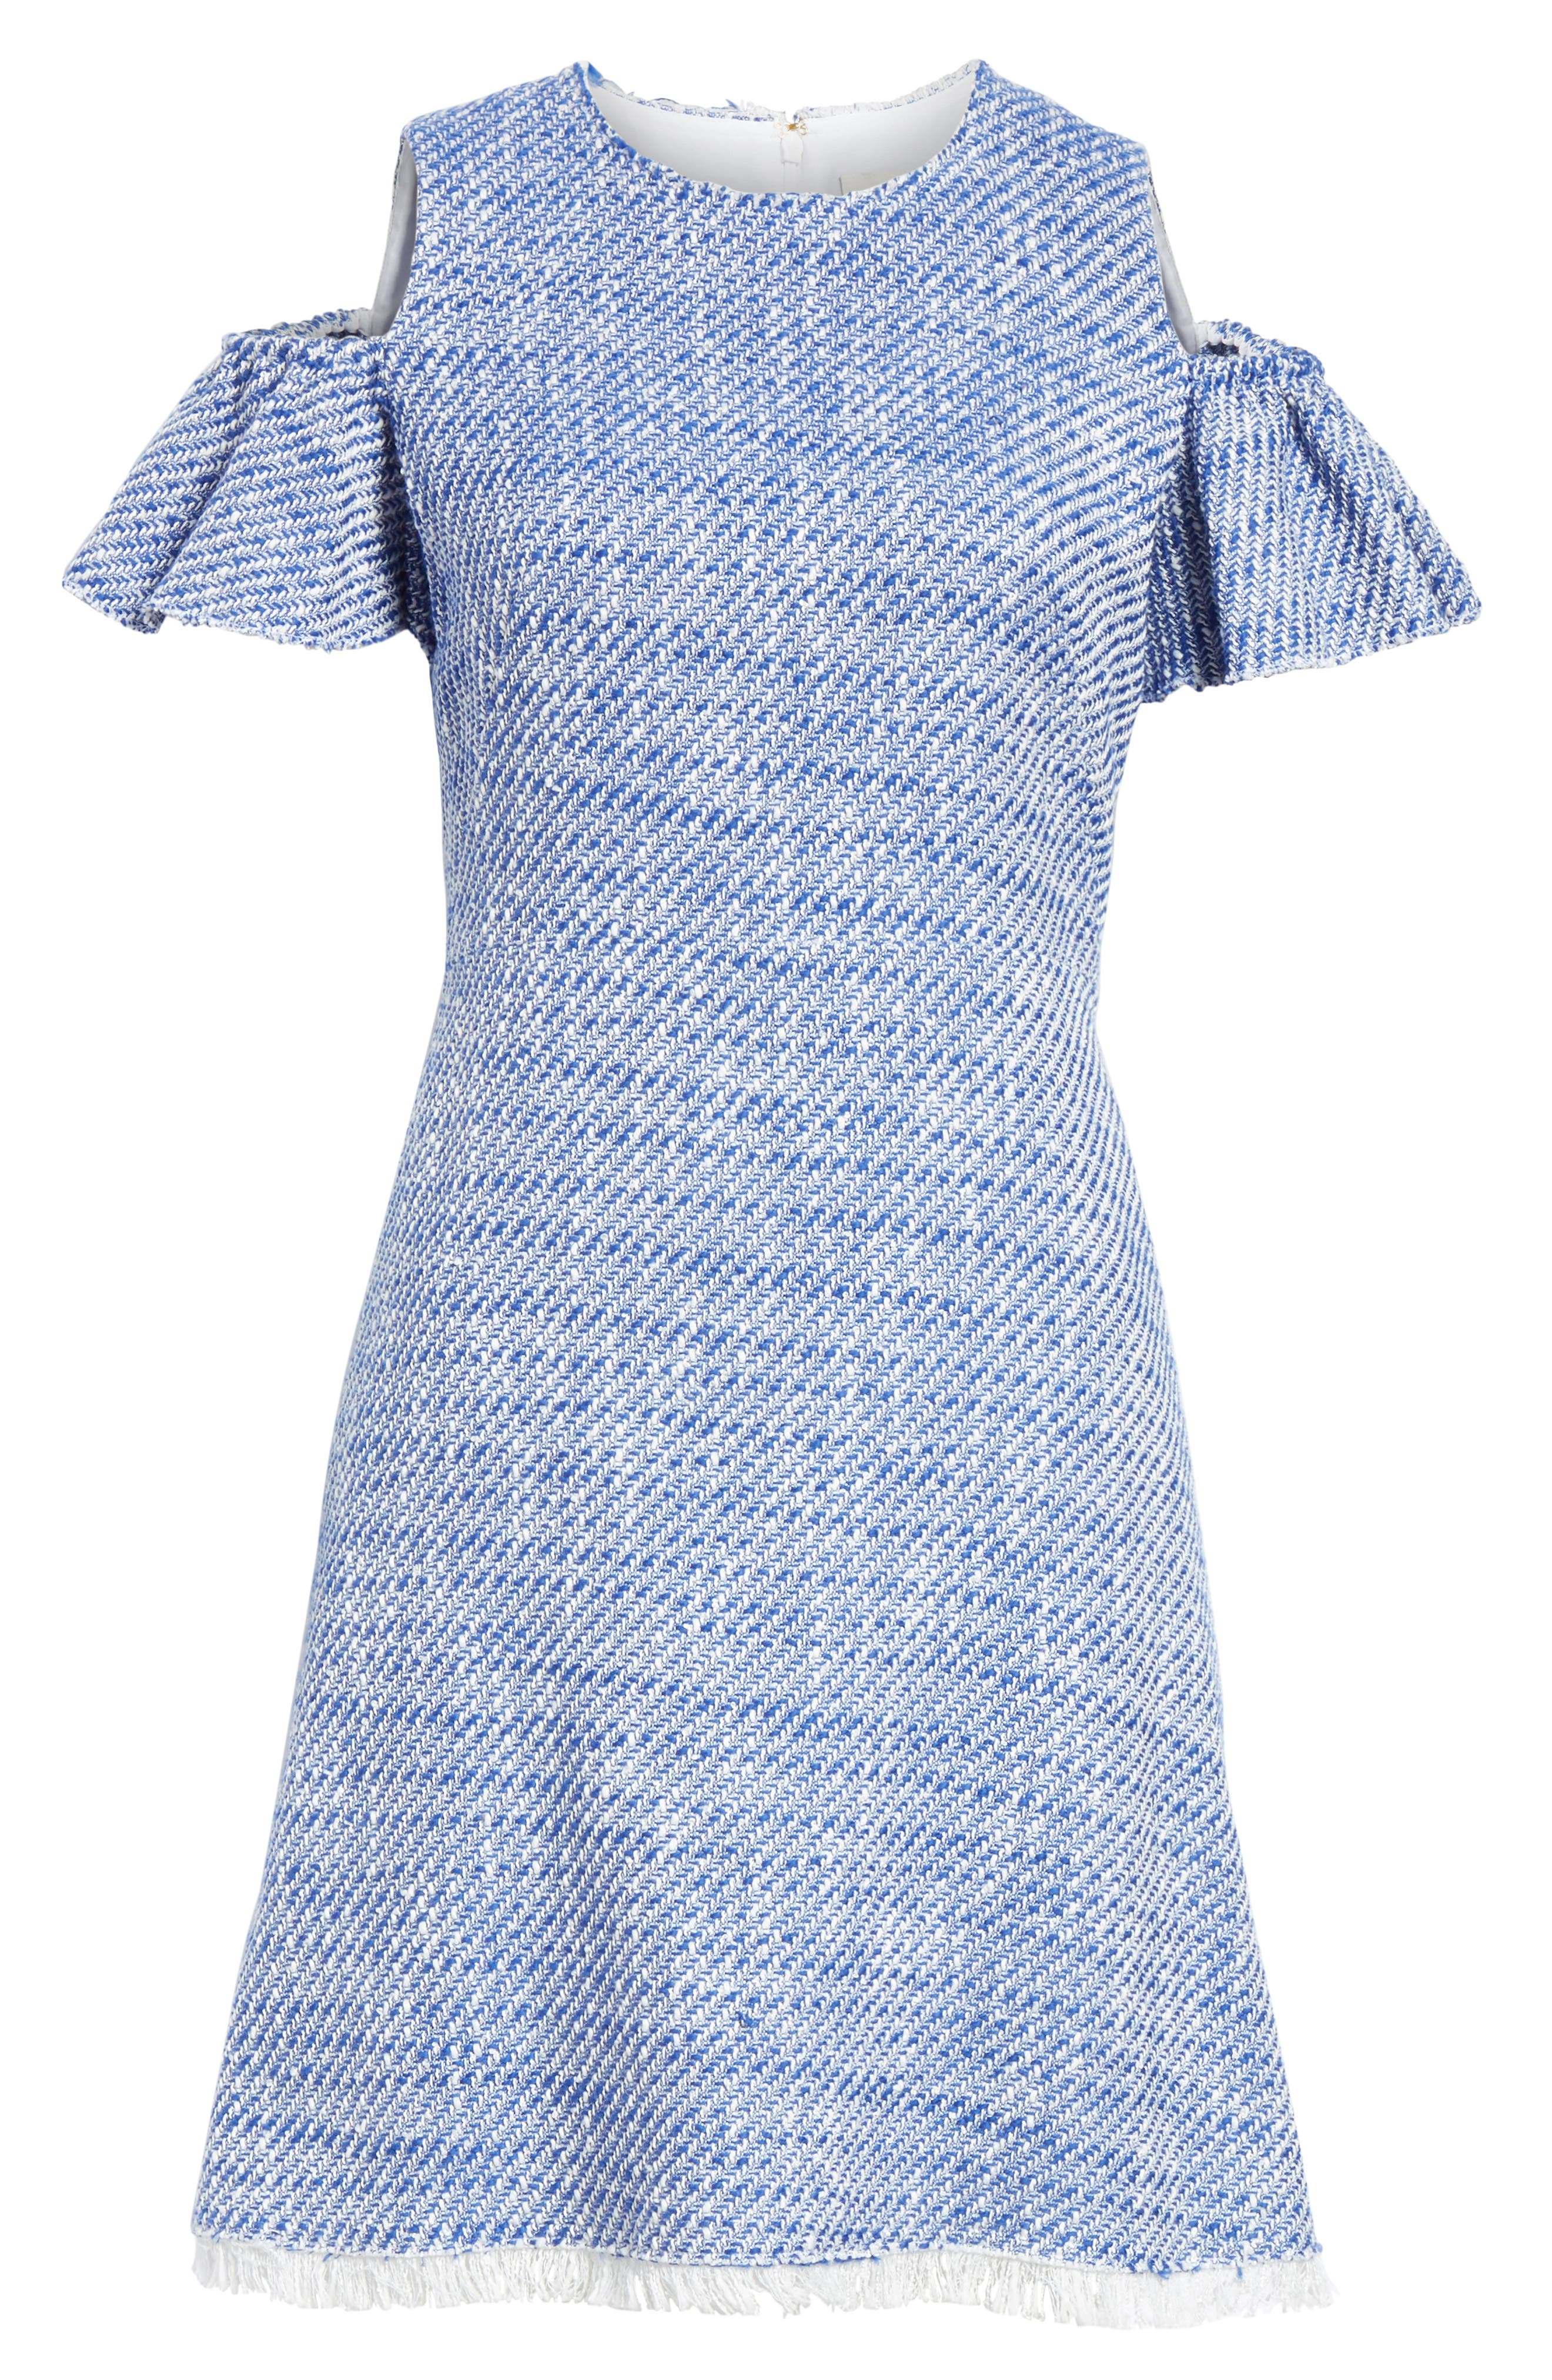 cold shoulder cotton blend tweed dress,                             Alternate thumbnail 6, color,                             French Navy/ Fresh White